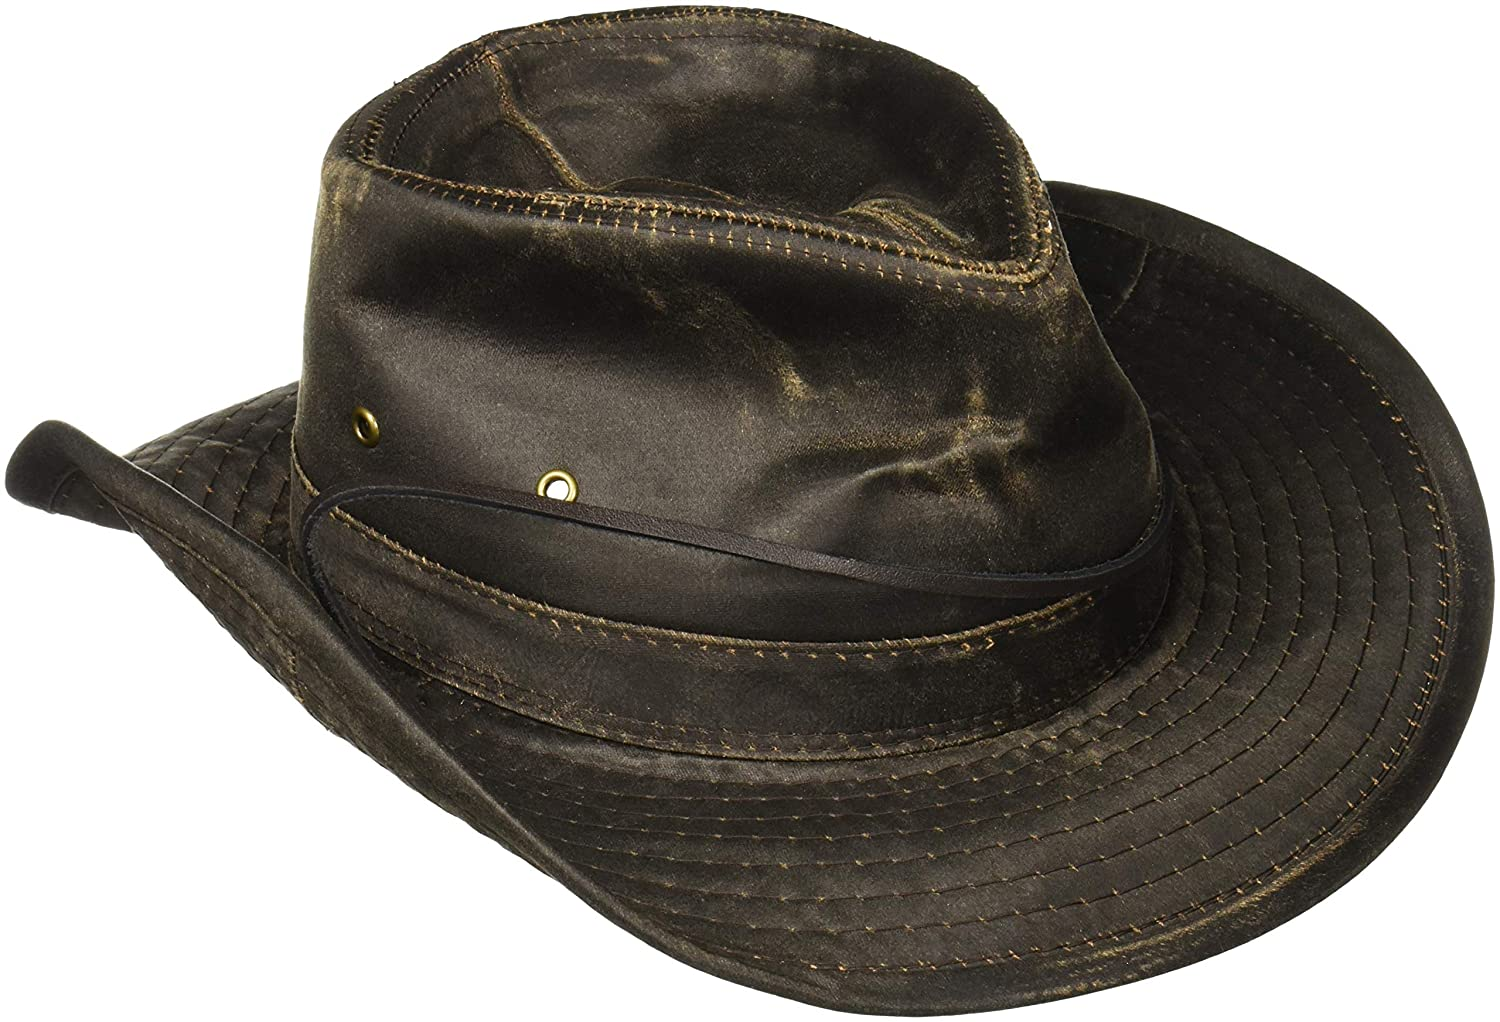 Dorfman-Pacific Weathered Cotton Outback Hat With Chin Cord MC127